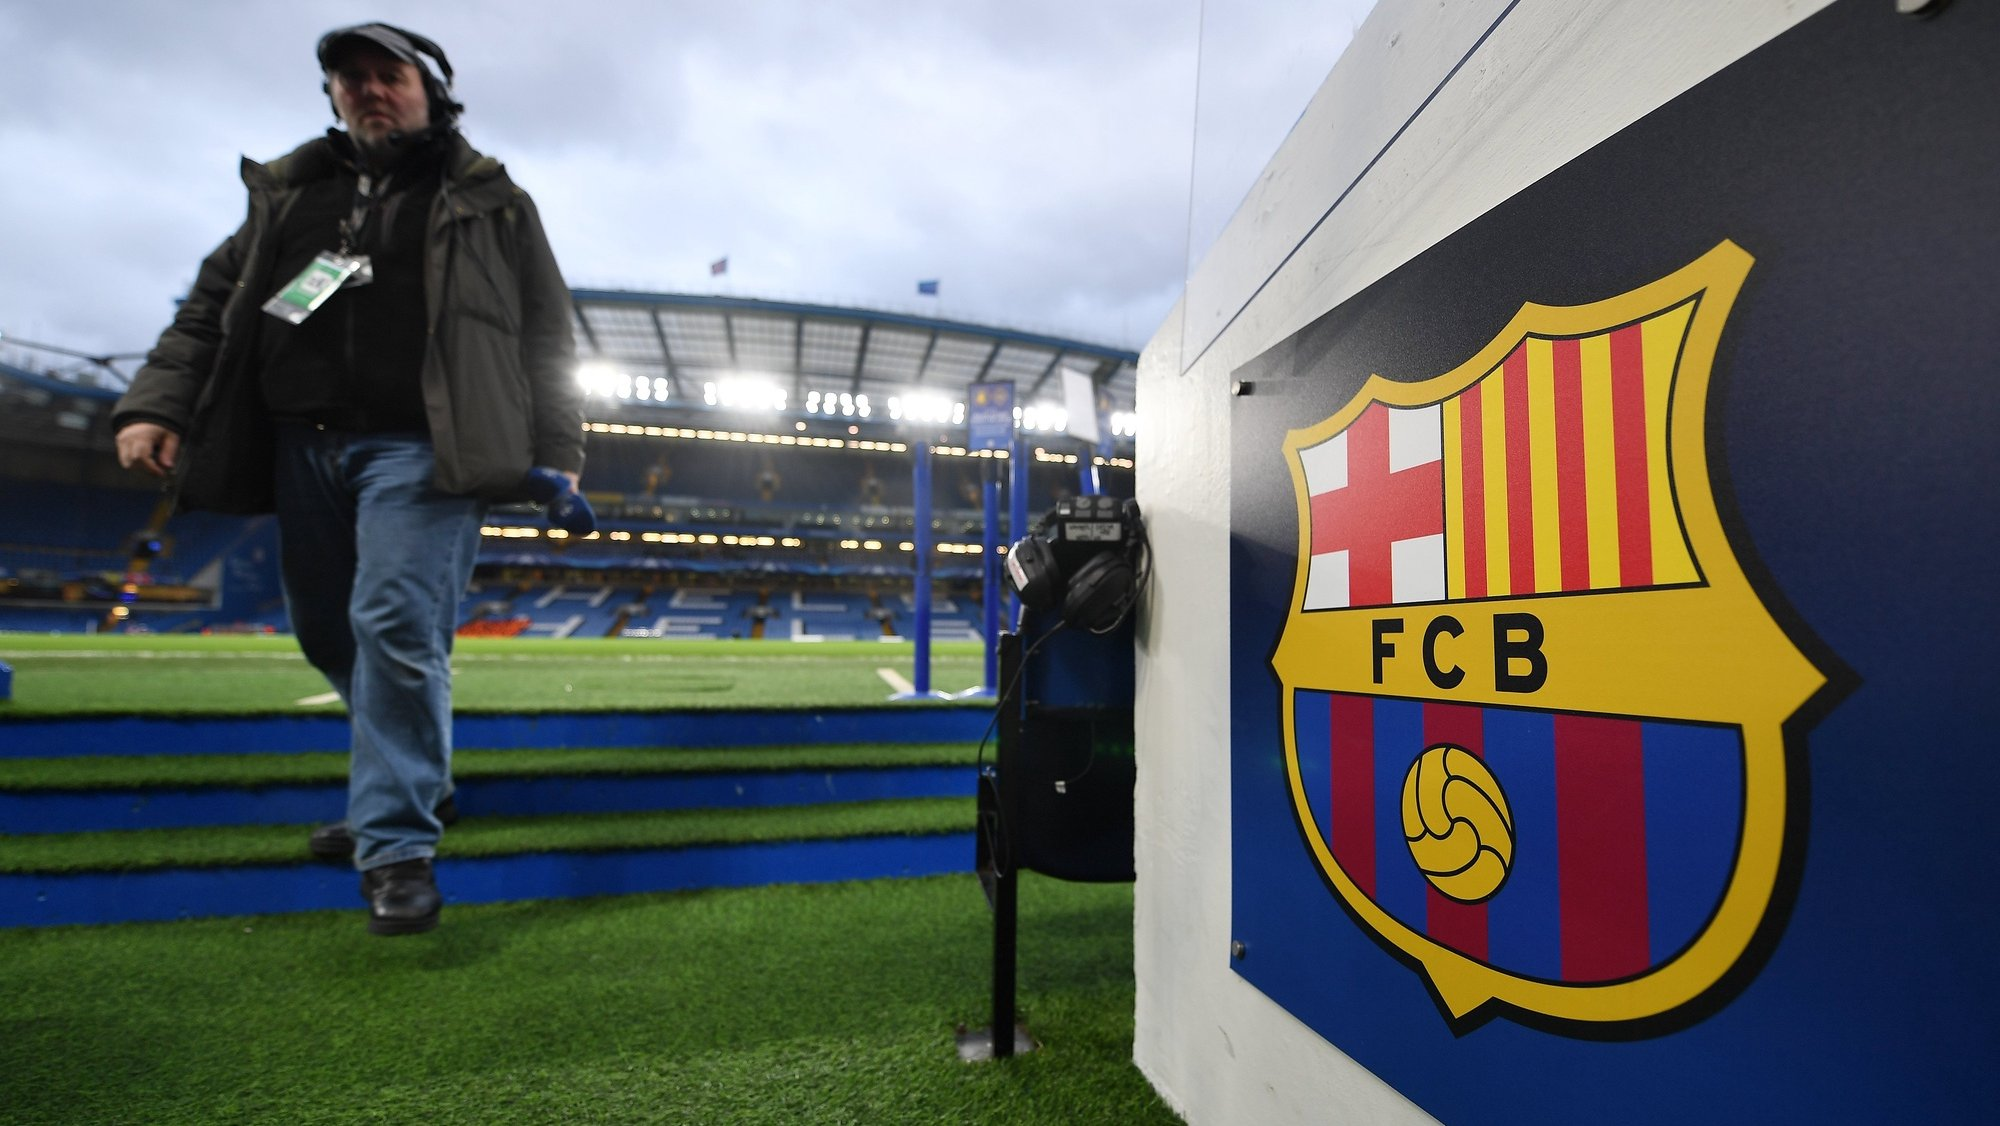 epa06547065 View of the FC Barcelona logo at Stamford Bridge stadium in London, Britain, 20 February 2018, ahead of the UEFA Champions League Round of 16 first leg match between Chelsea FC and FC Barcelona.  EPA/ANDY RAIN